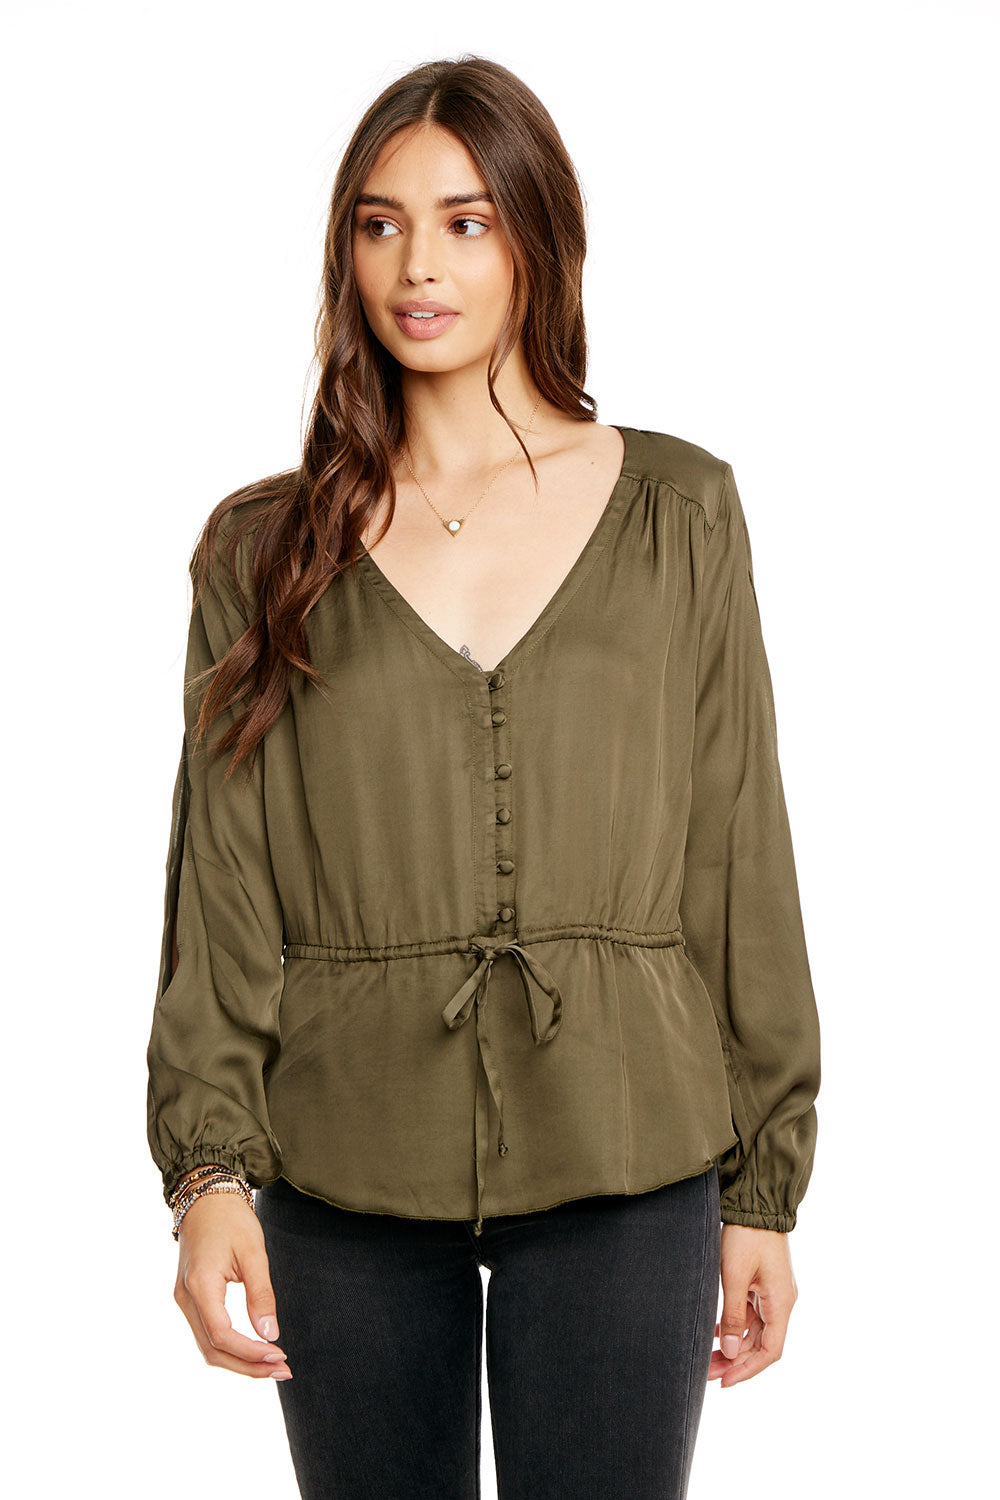 SILKY BASICS SLIT BLOUSON SLEEVE TIE FRONT PEPLUM BUTTON DOWN WOMENS chaserbrand4.myshopify.com